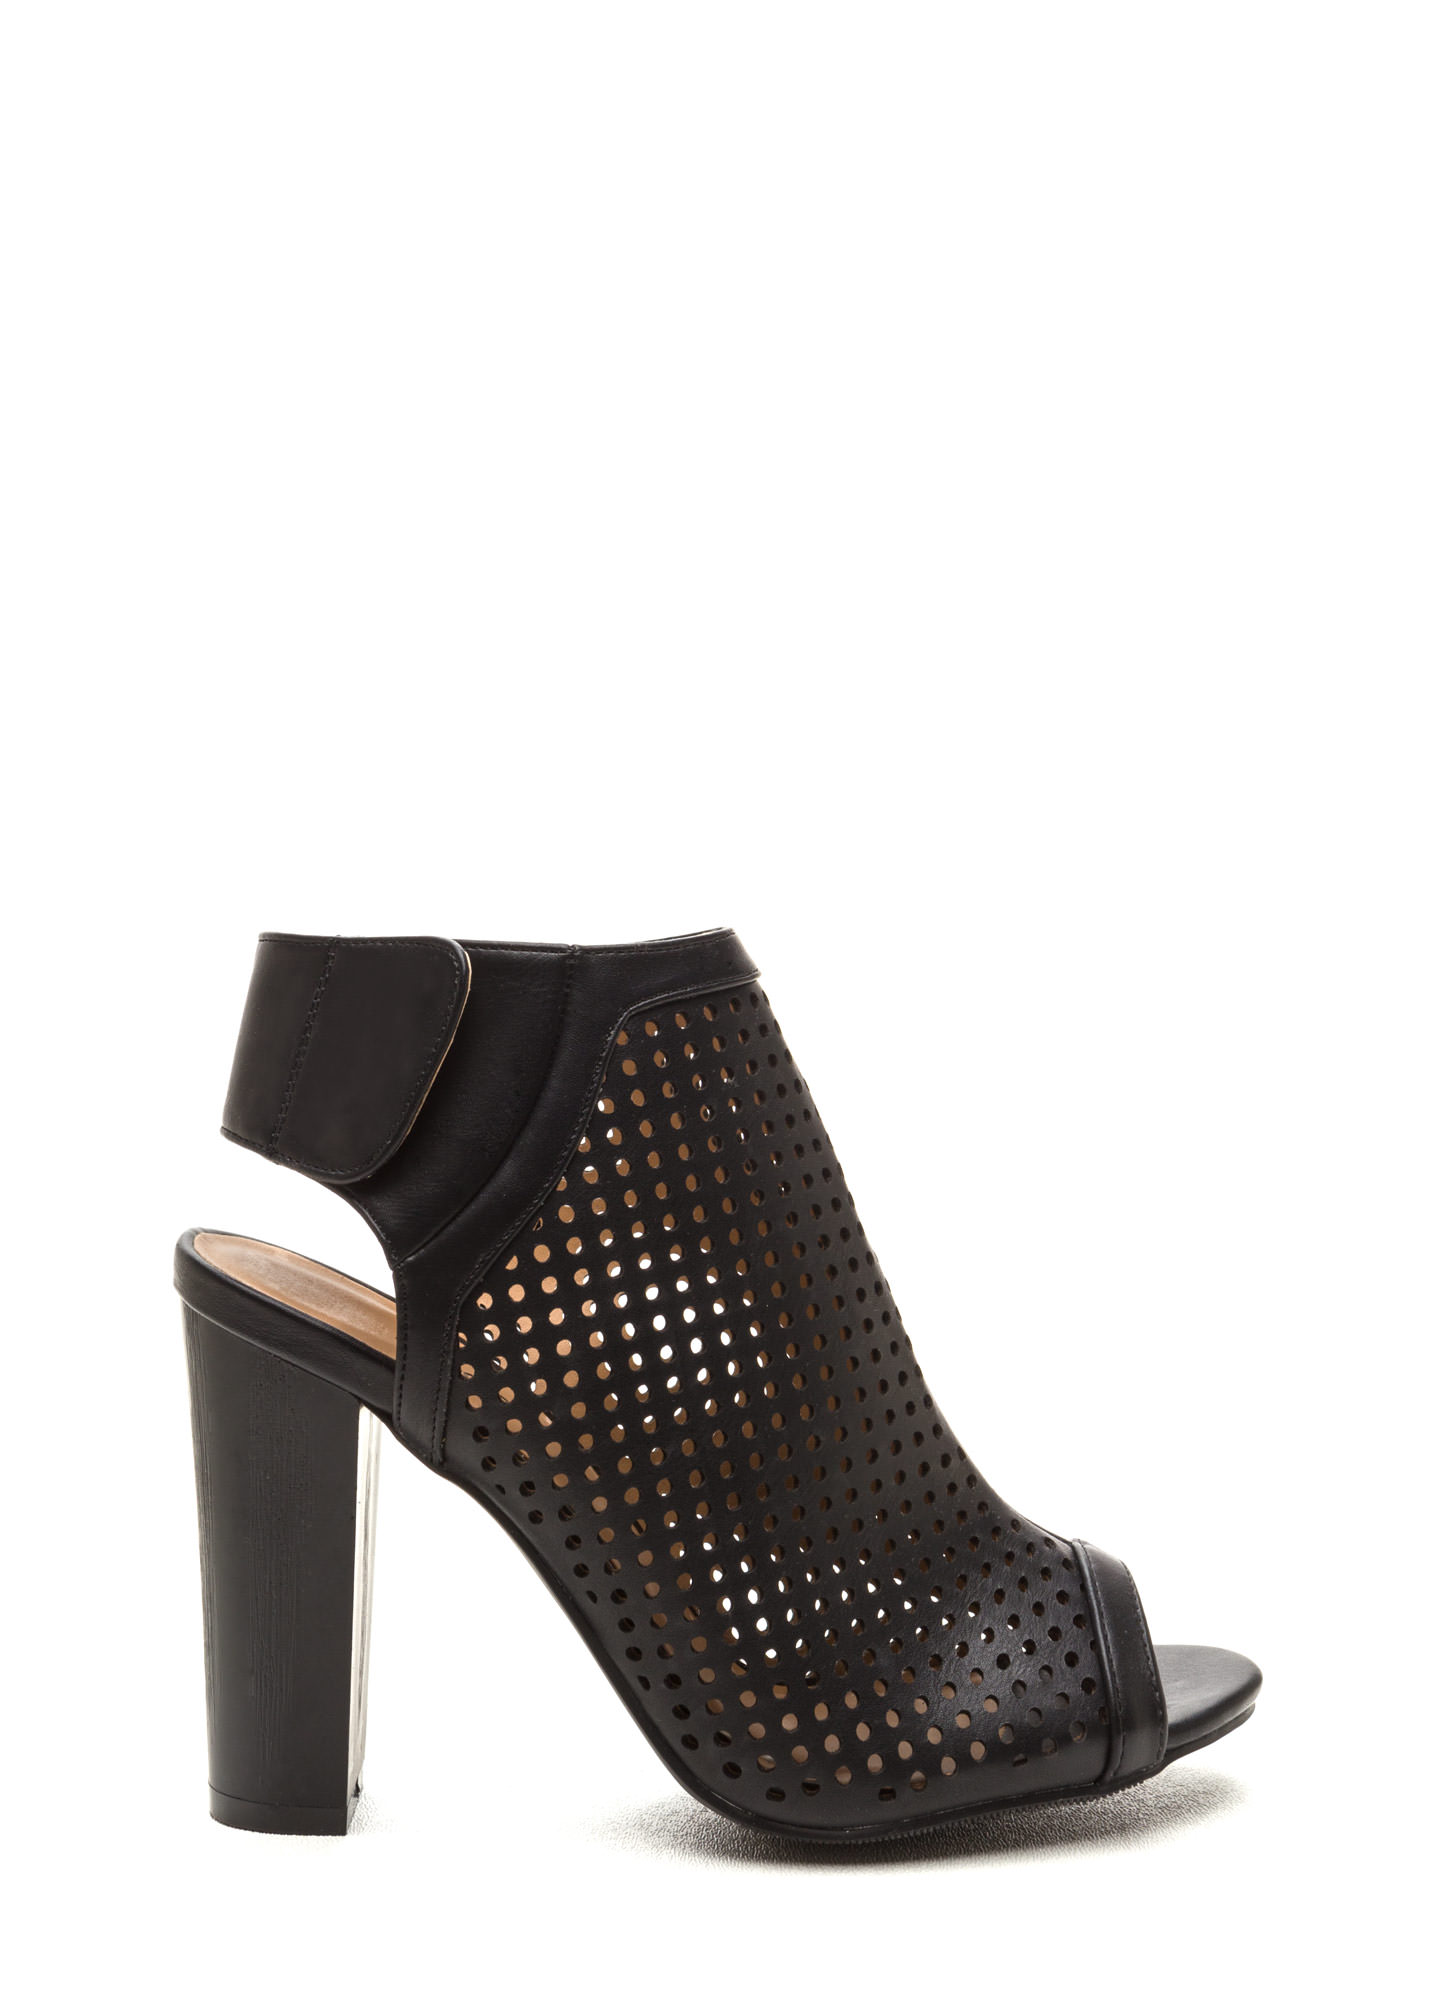 Pleased As Punch Perforated Booties BLACK